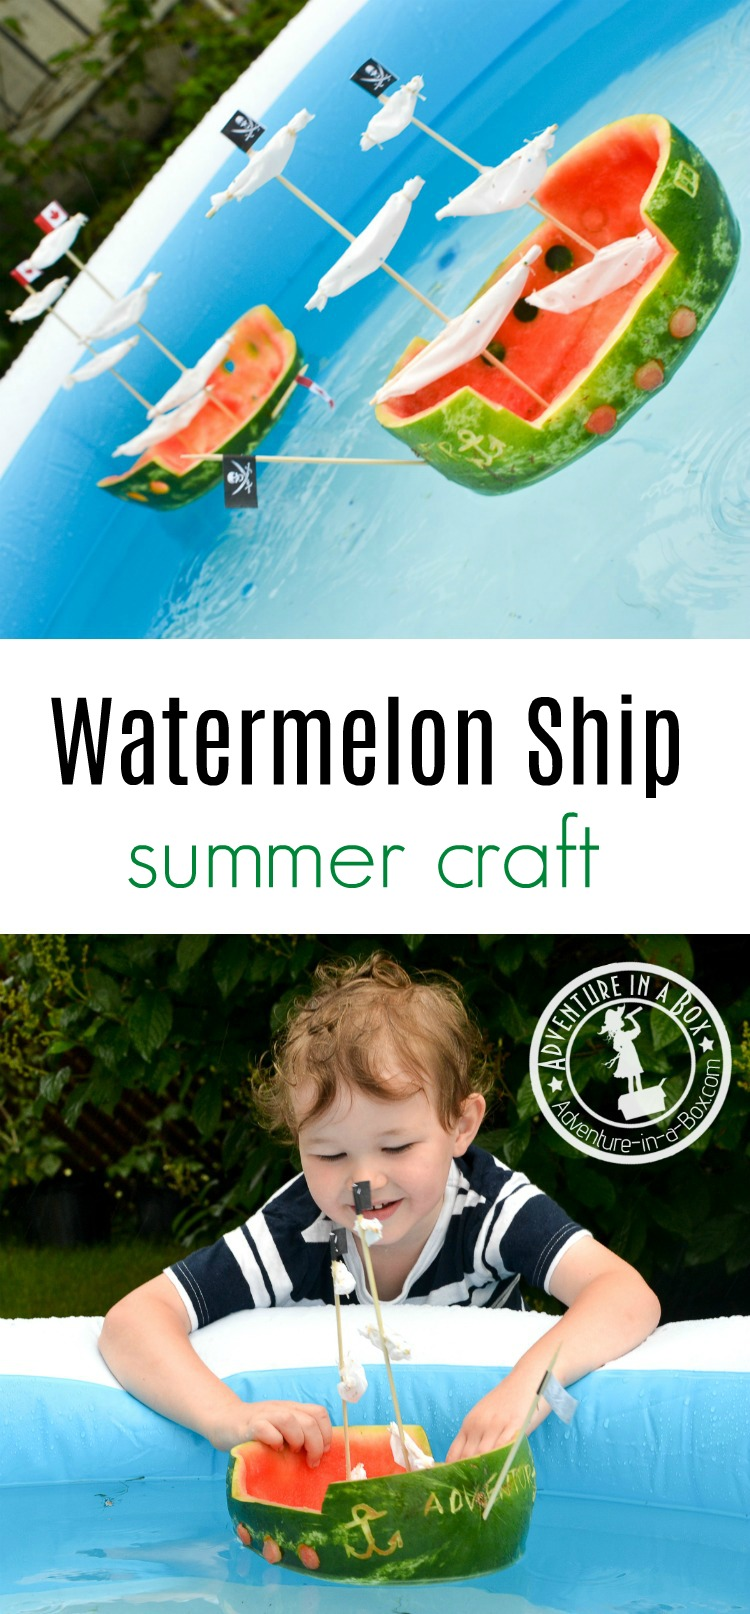 For a quick summer craft with kids, make watermelon ships and have a glorious sea battle in the backyard!